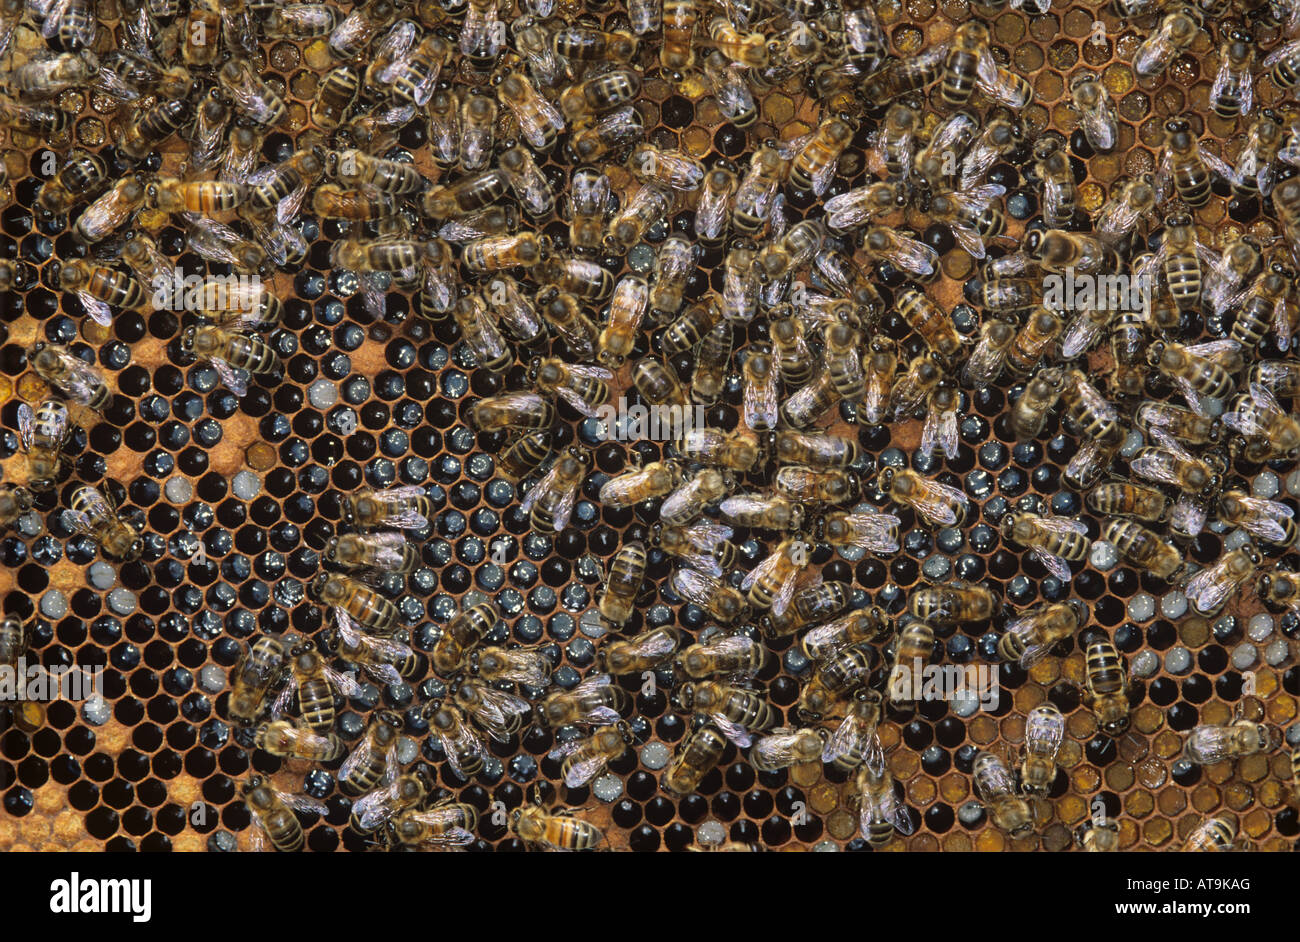 Workers and a few drone honey bees Apis mellifera on brood cells in a hive - Stock Image